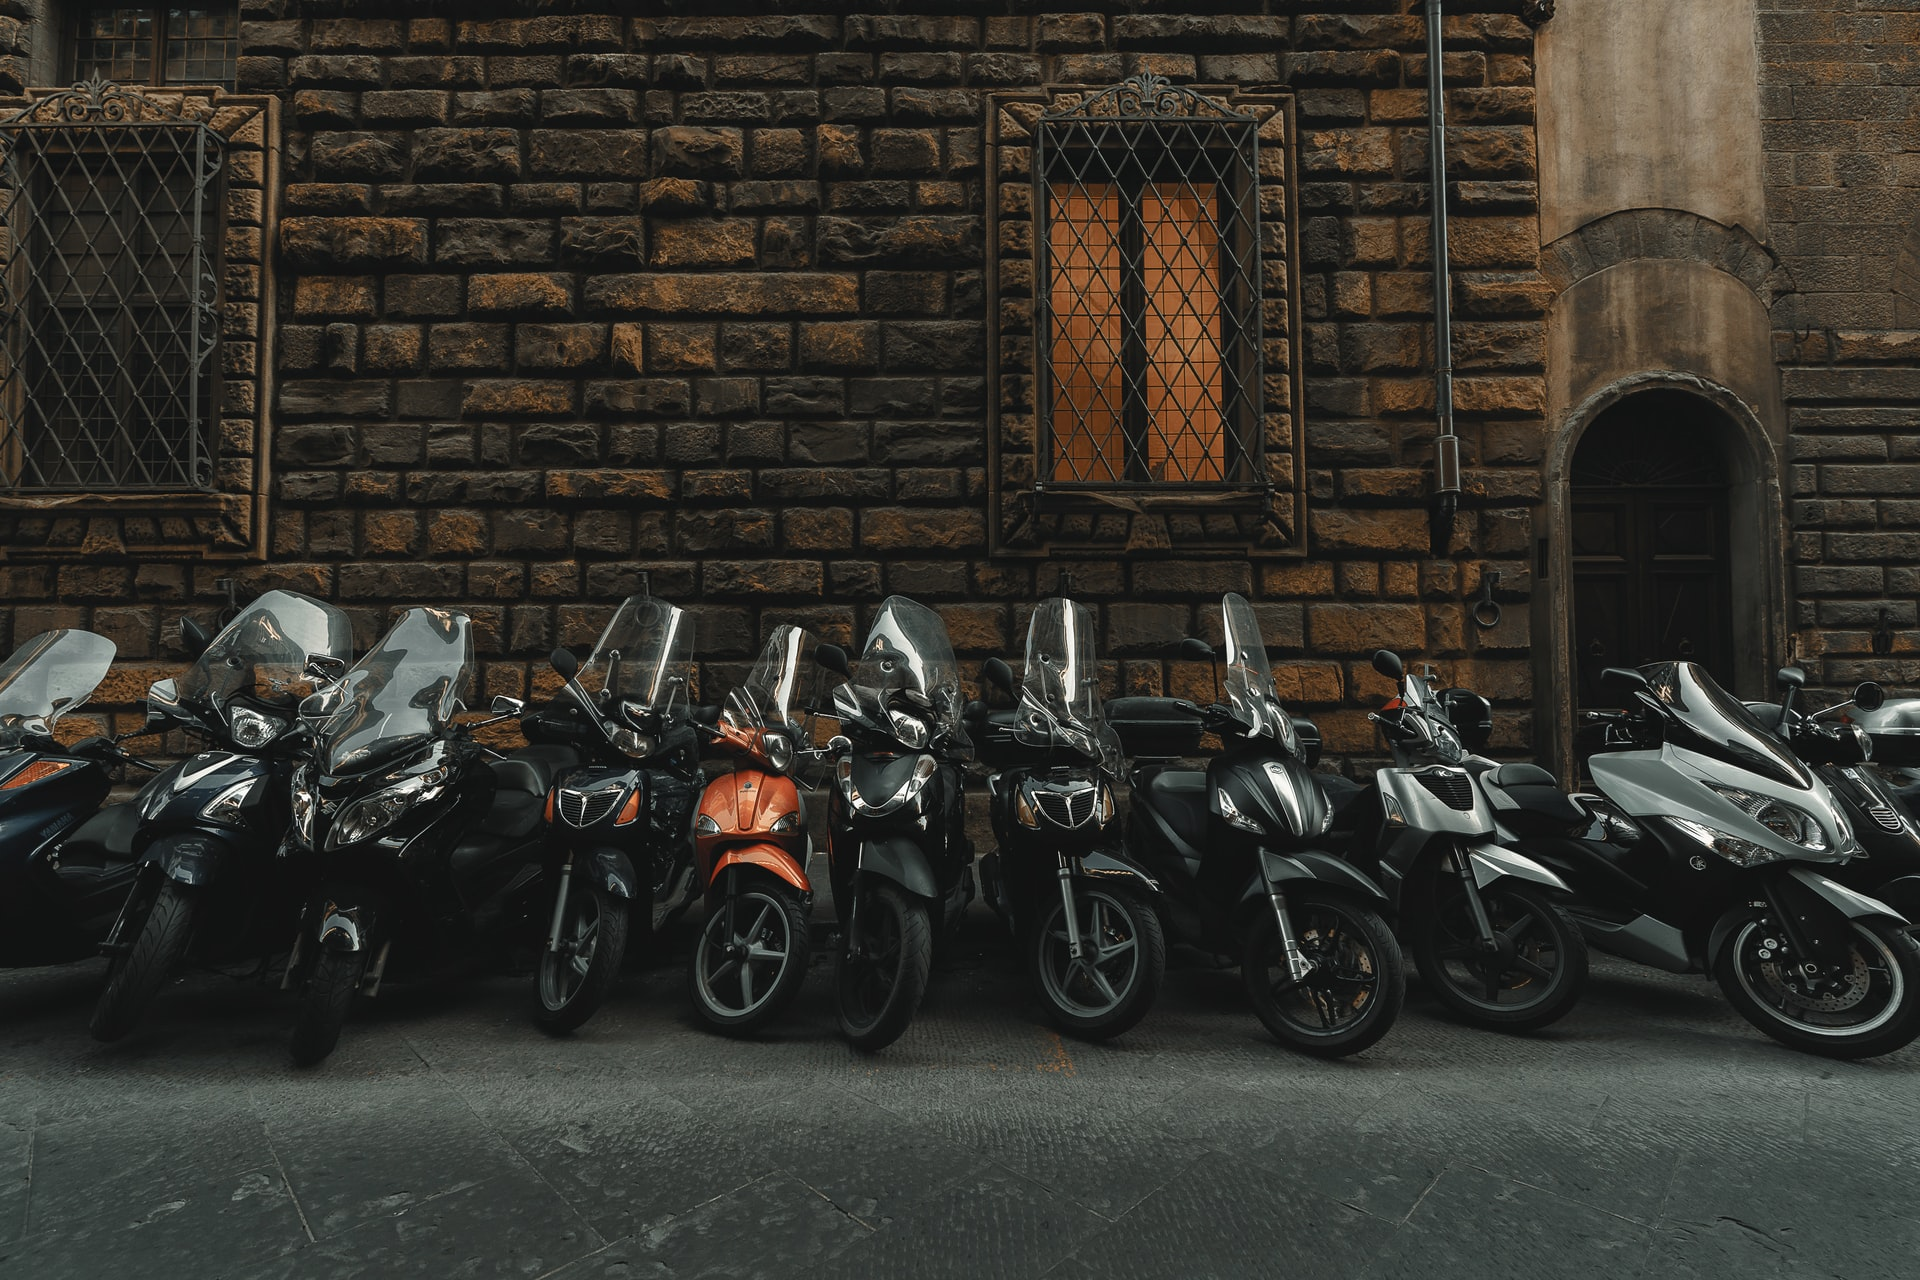 Motorcycles parked one stands out